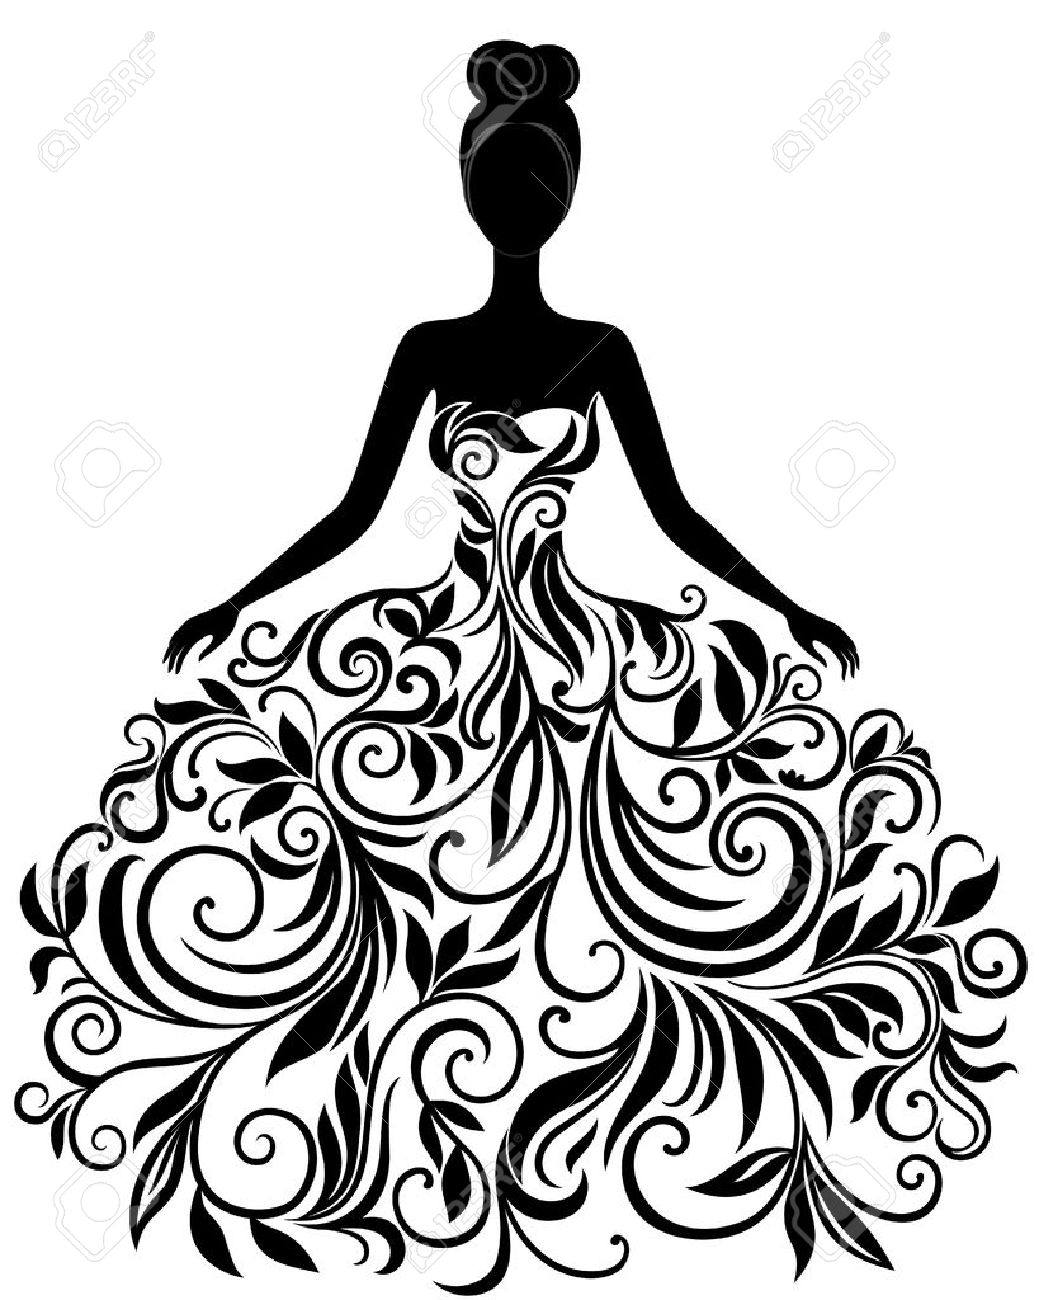 Vector Silhouette Of Young Woman In Elegant Wedding Dress Royalty ...